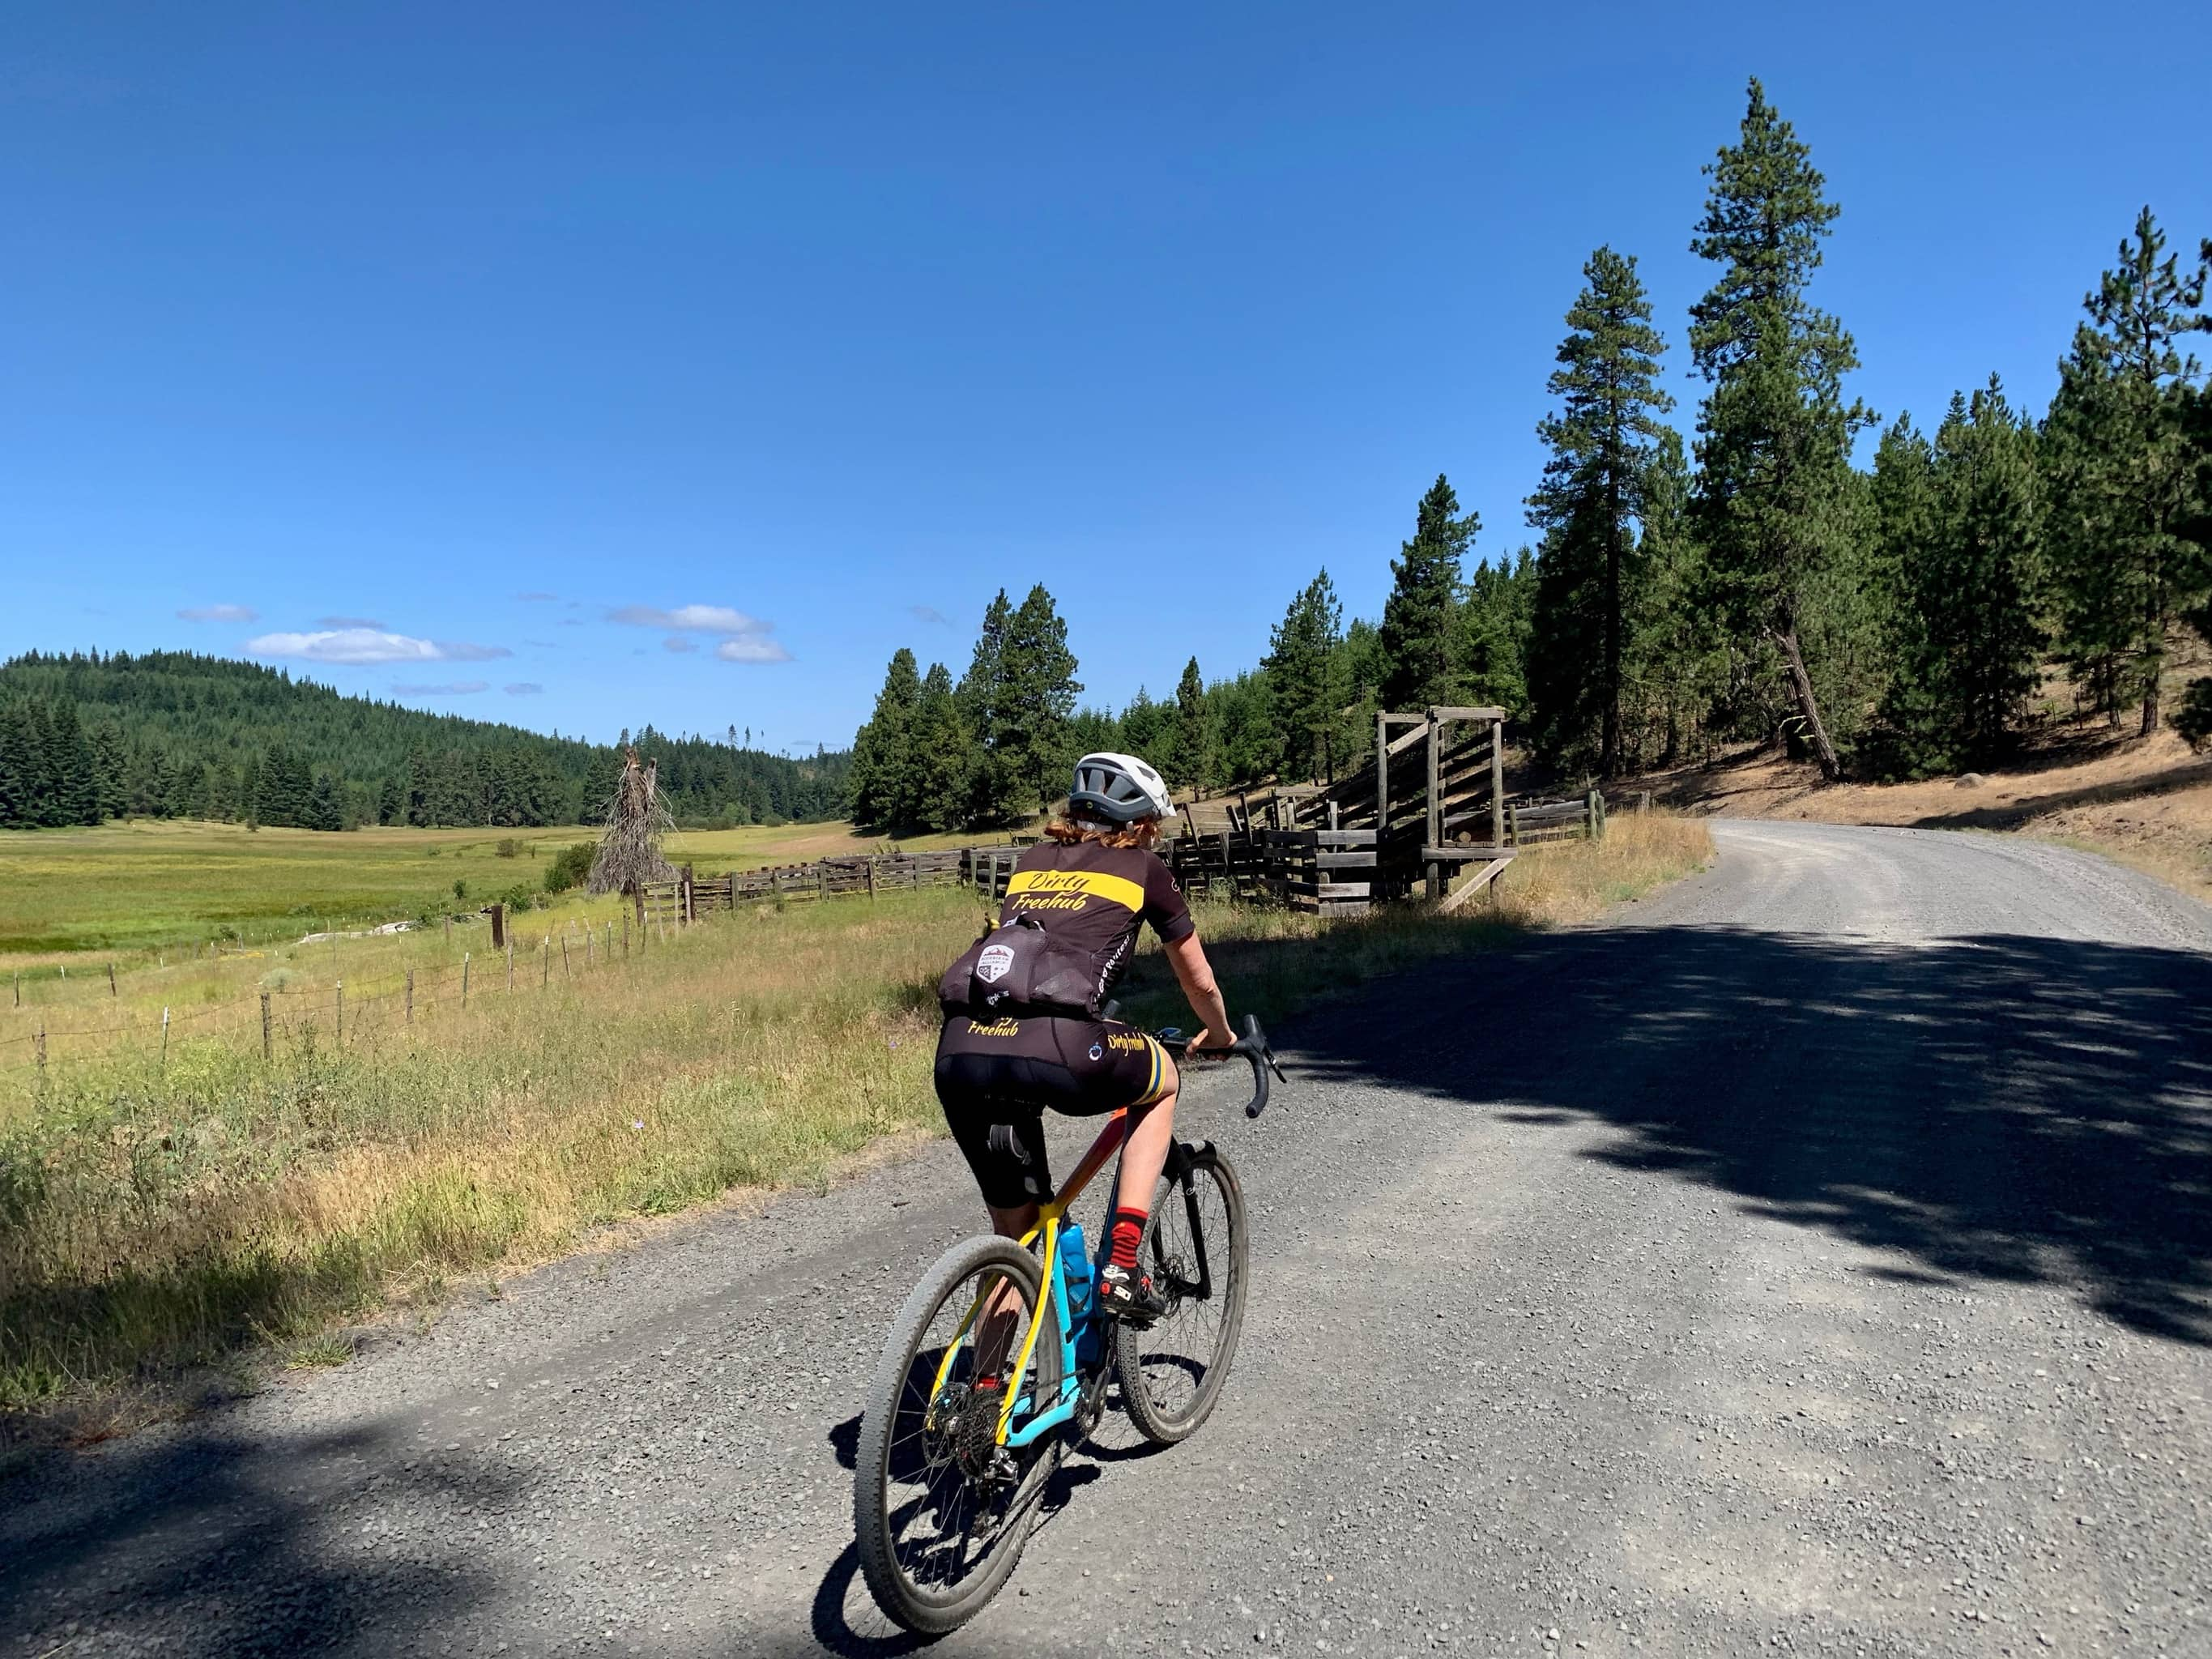 Bike rider on gravel road with cattle corral in Washington state.